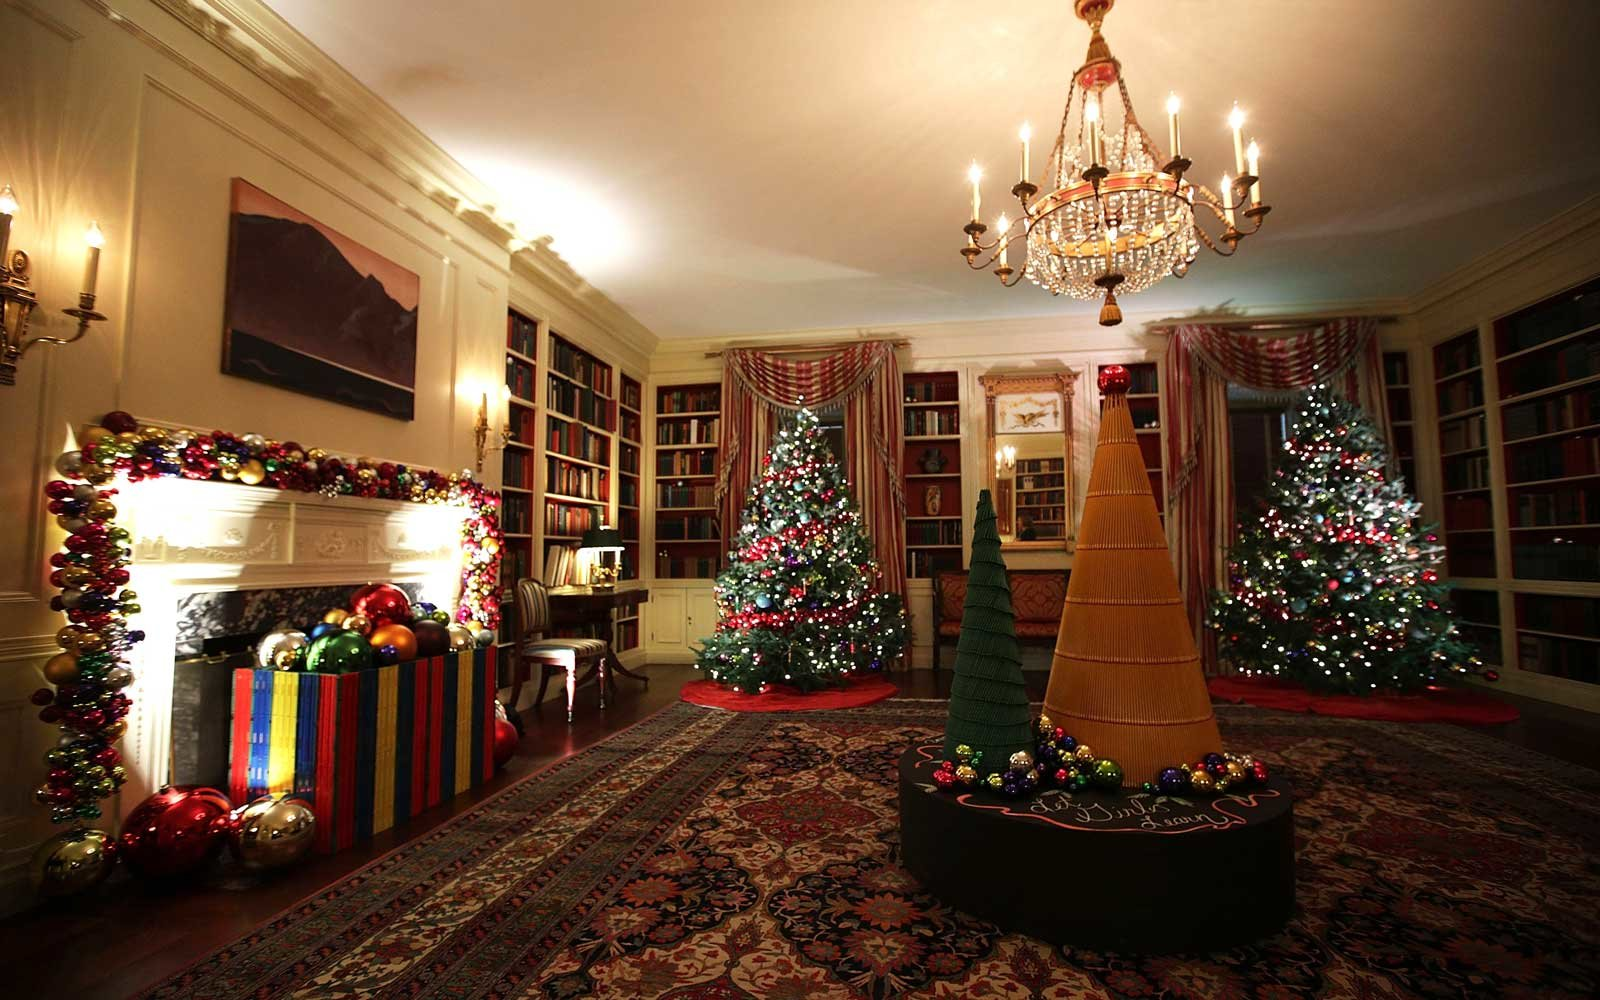 The White House Holiday Decorations for the Obama Family's ...